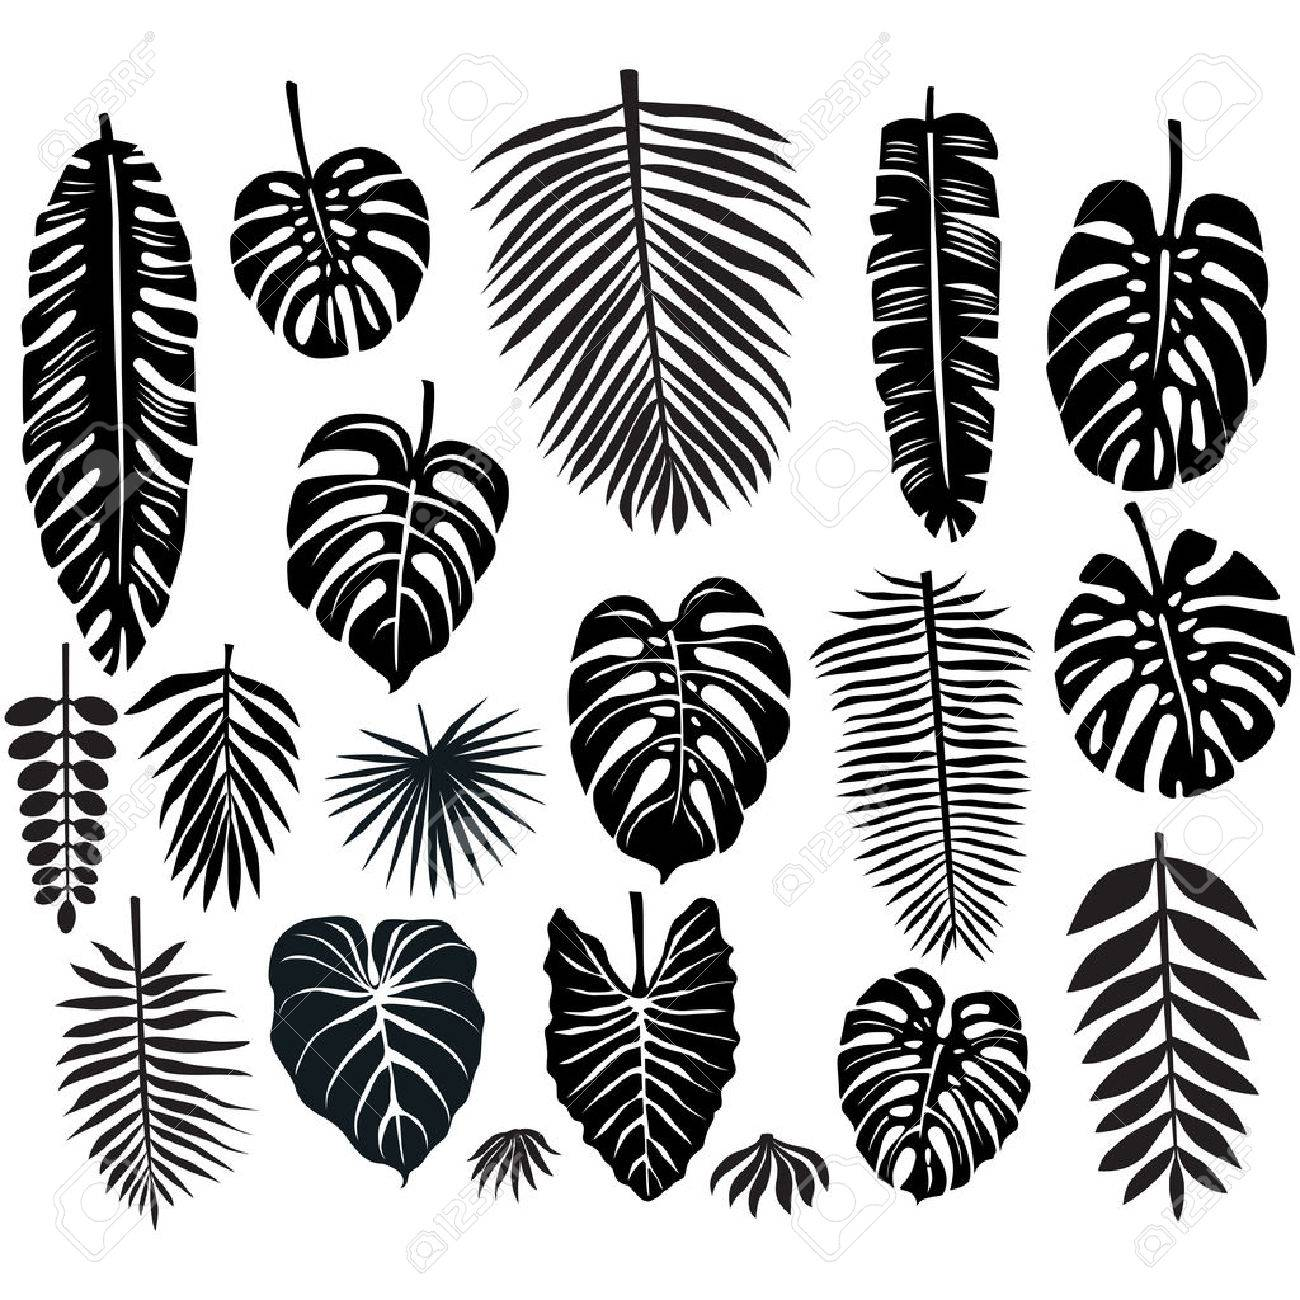 Set of Tropical Leaves - 59282186